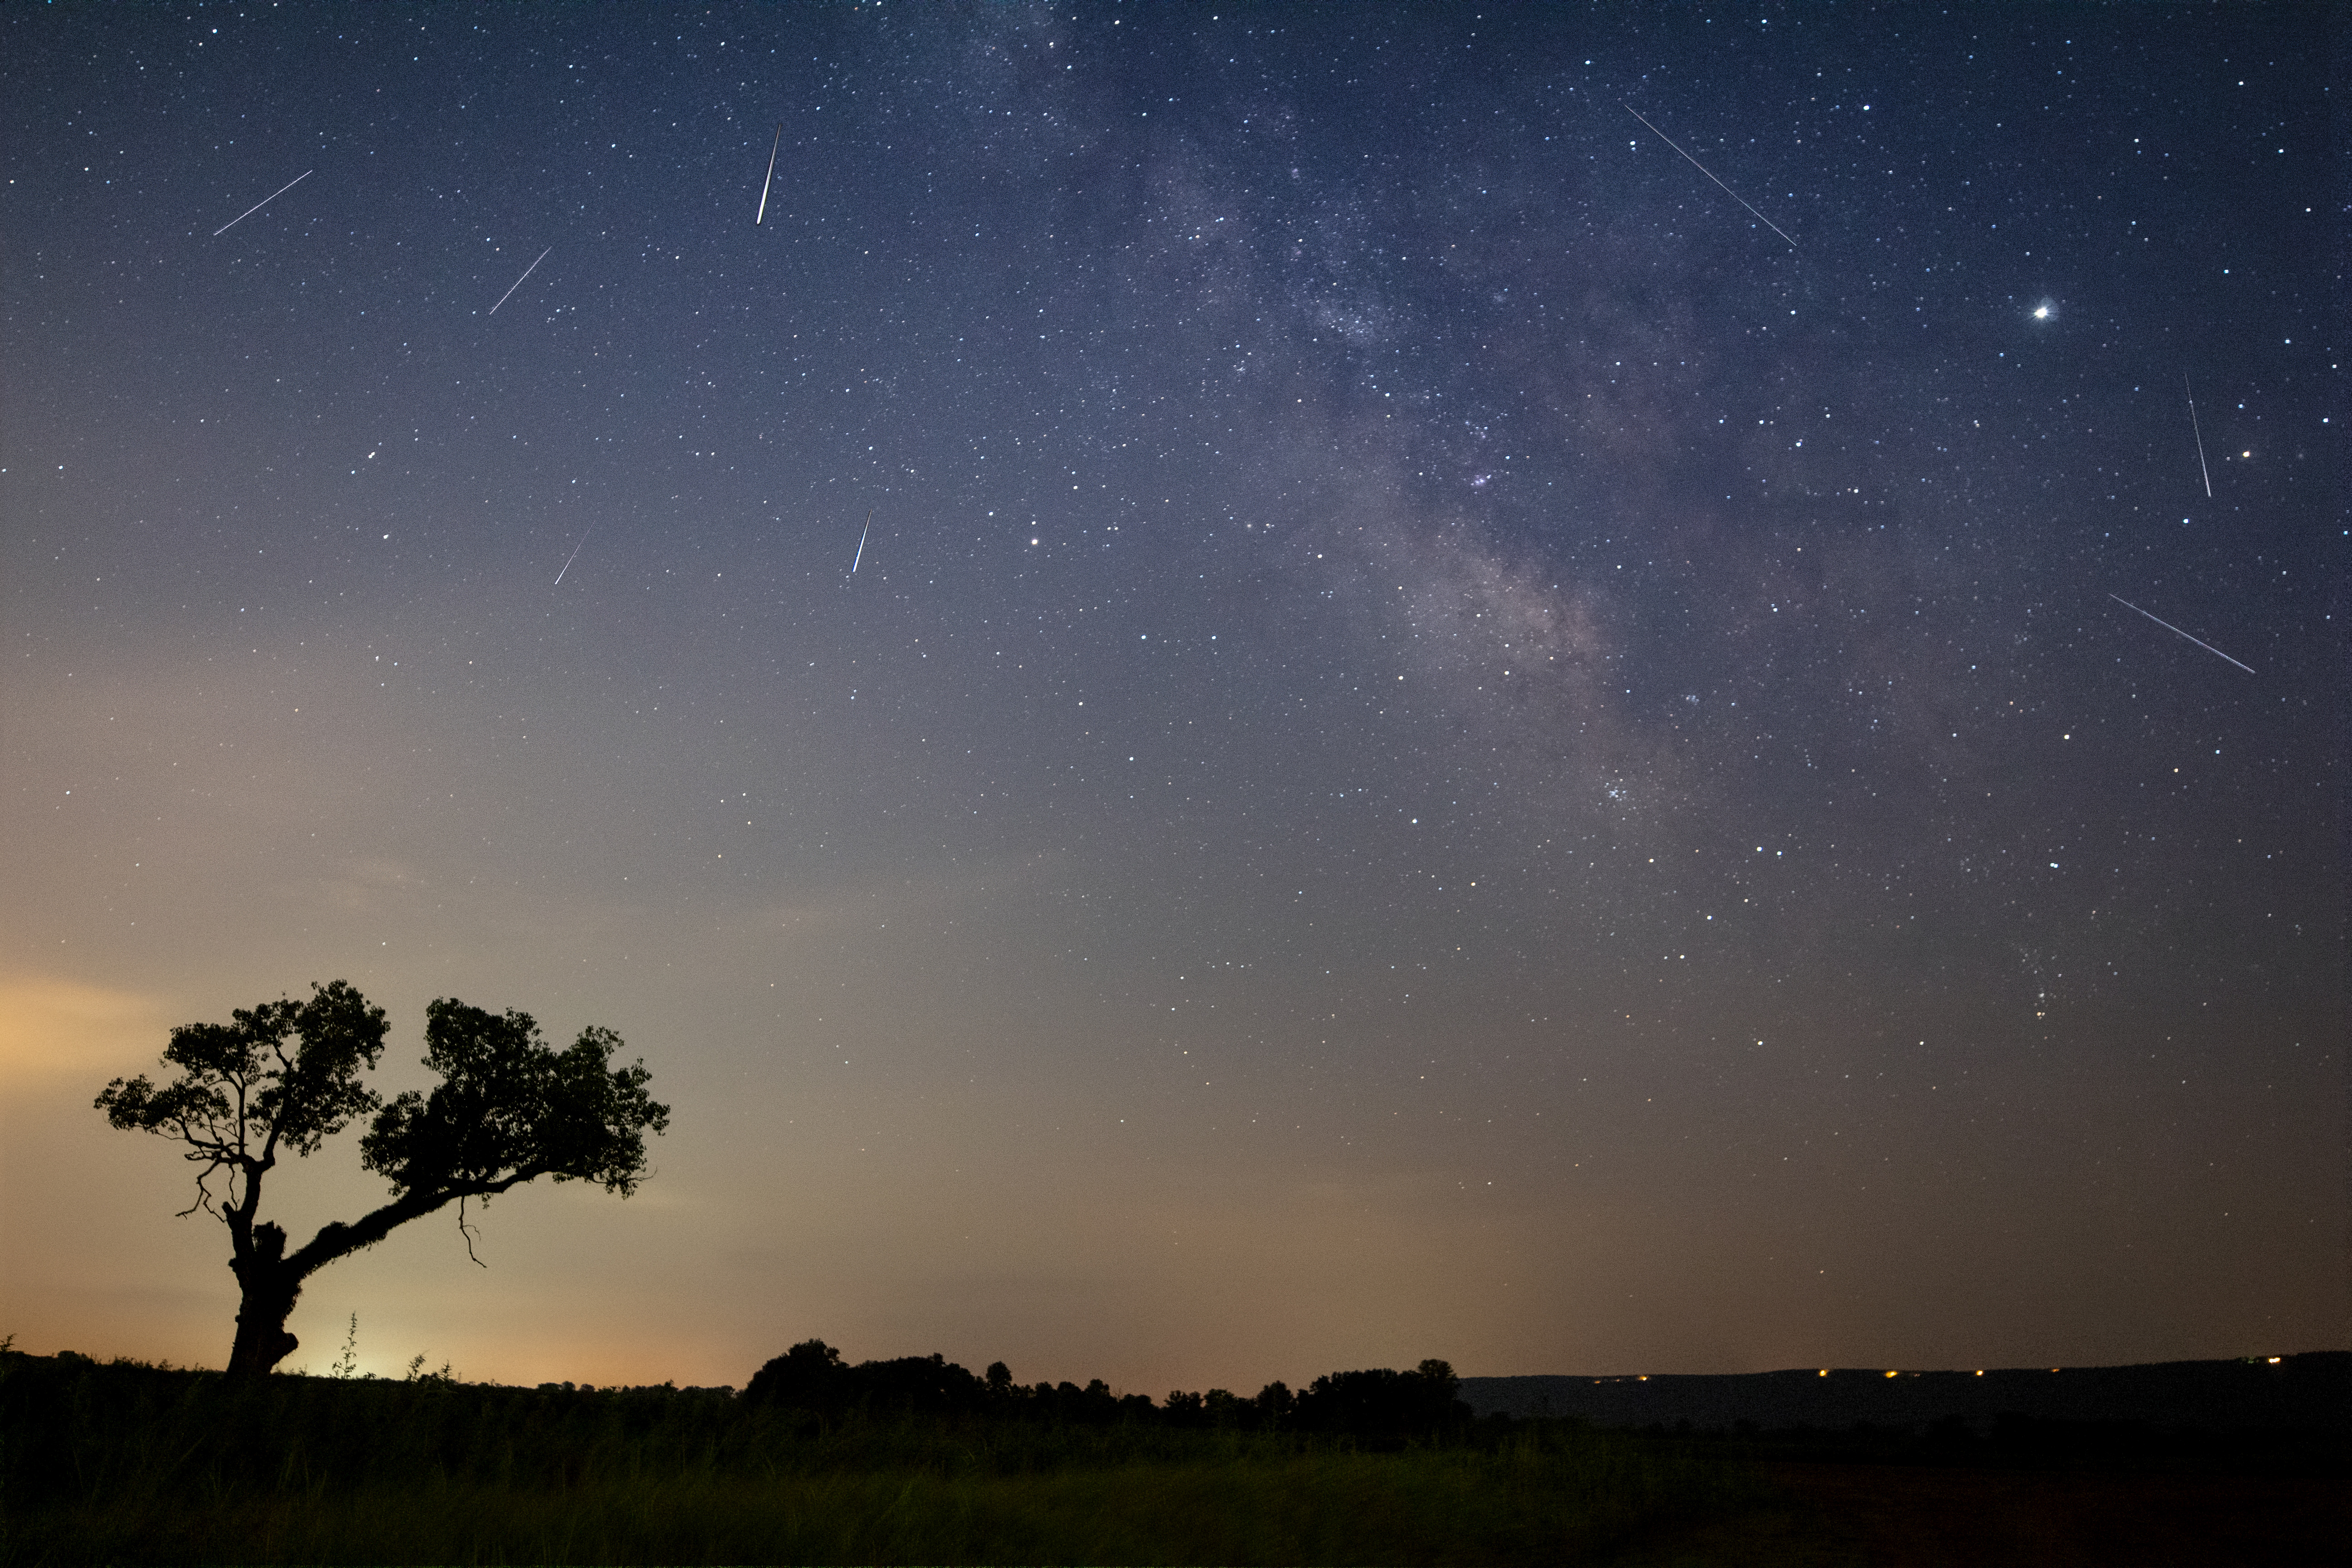 Millky Way with Perseids over tree silhouette